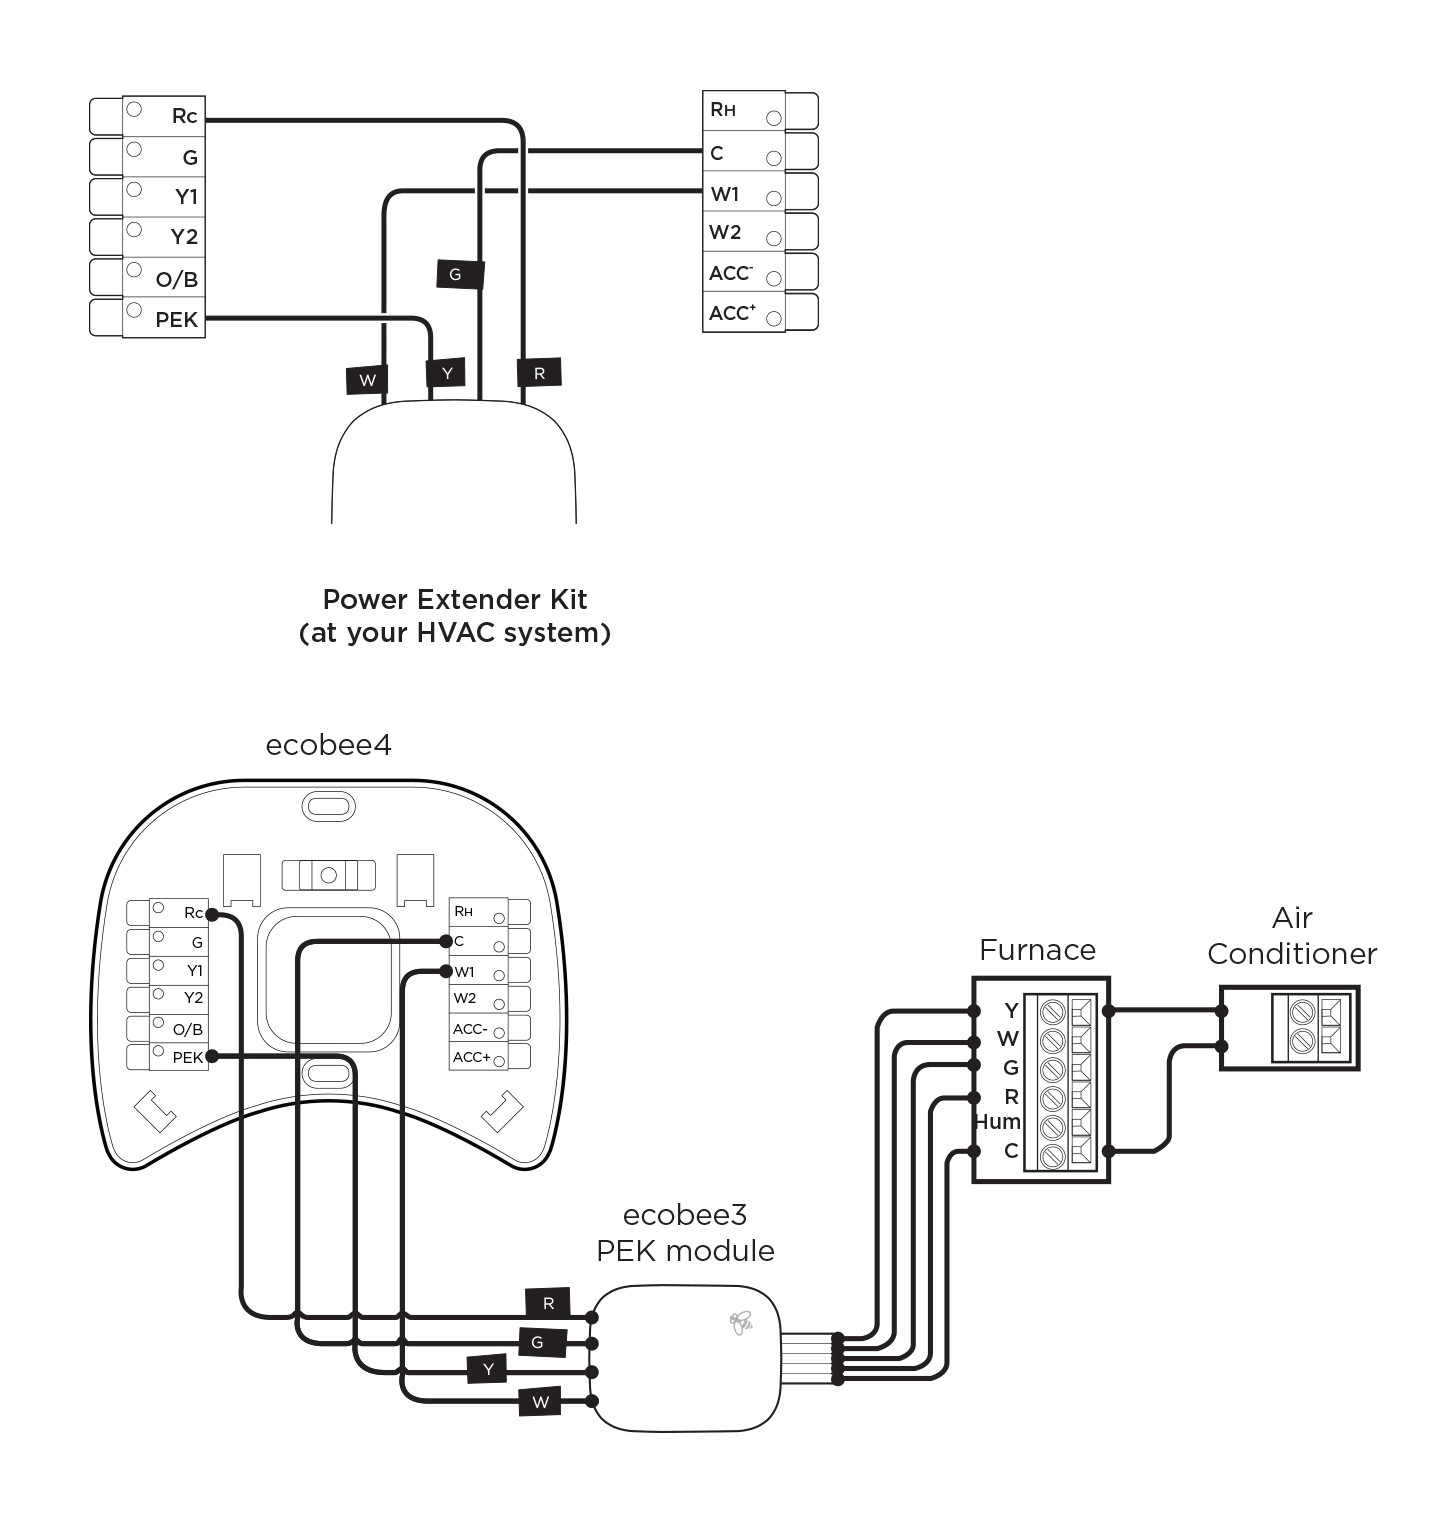 ecobee4 wiring diagram Collection-Ecobee3 Wiring Diagram New I M Upgrading From Ecobee3 to Ecobee4 What Wiring Changes Do I Need 6-j